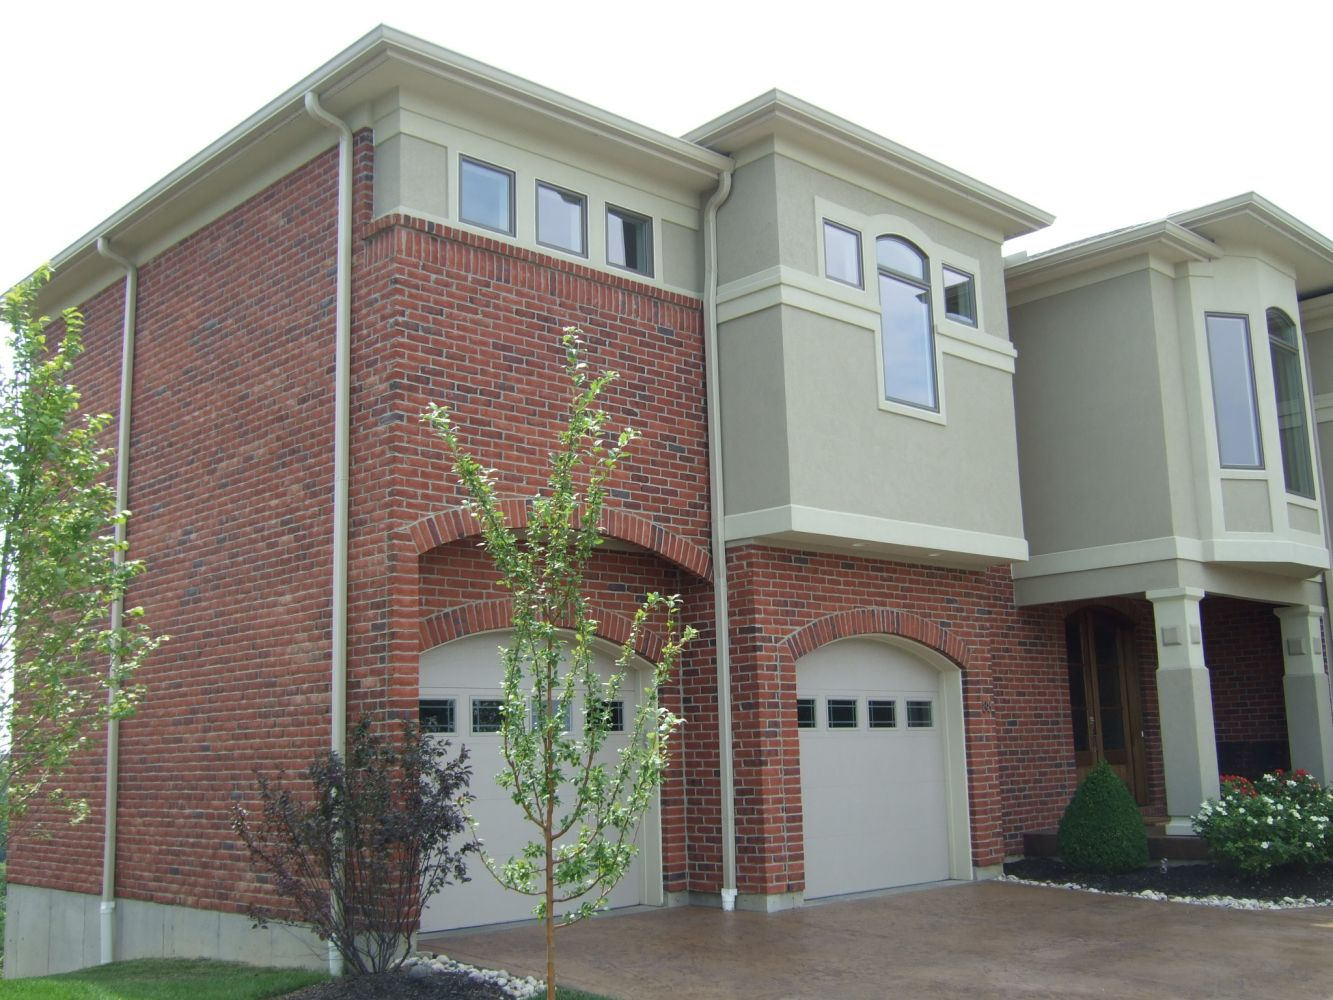 Bricks used for residential client